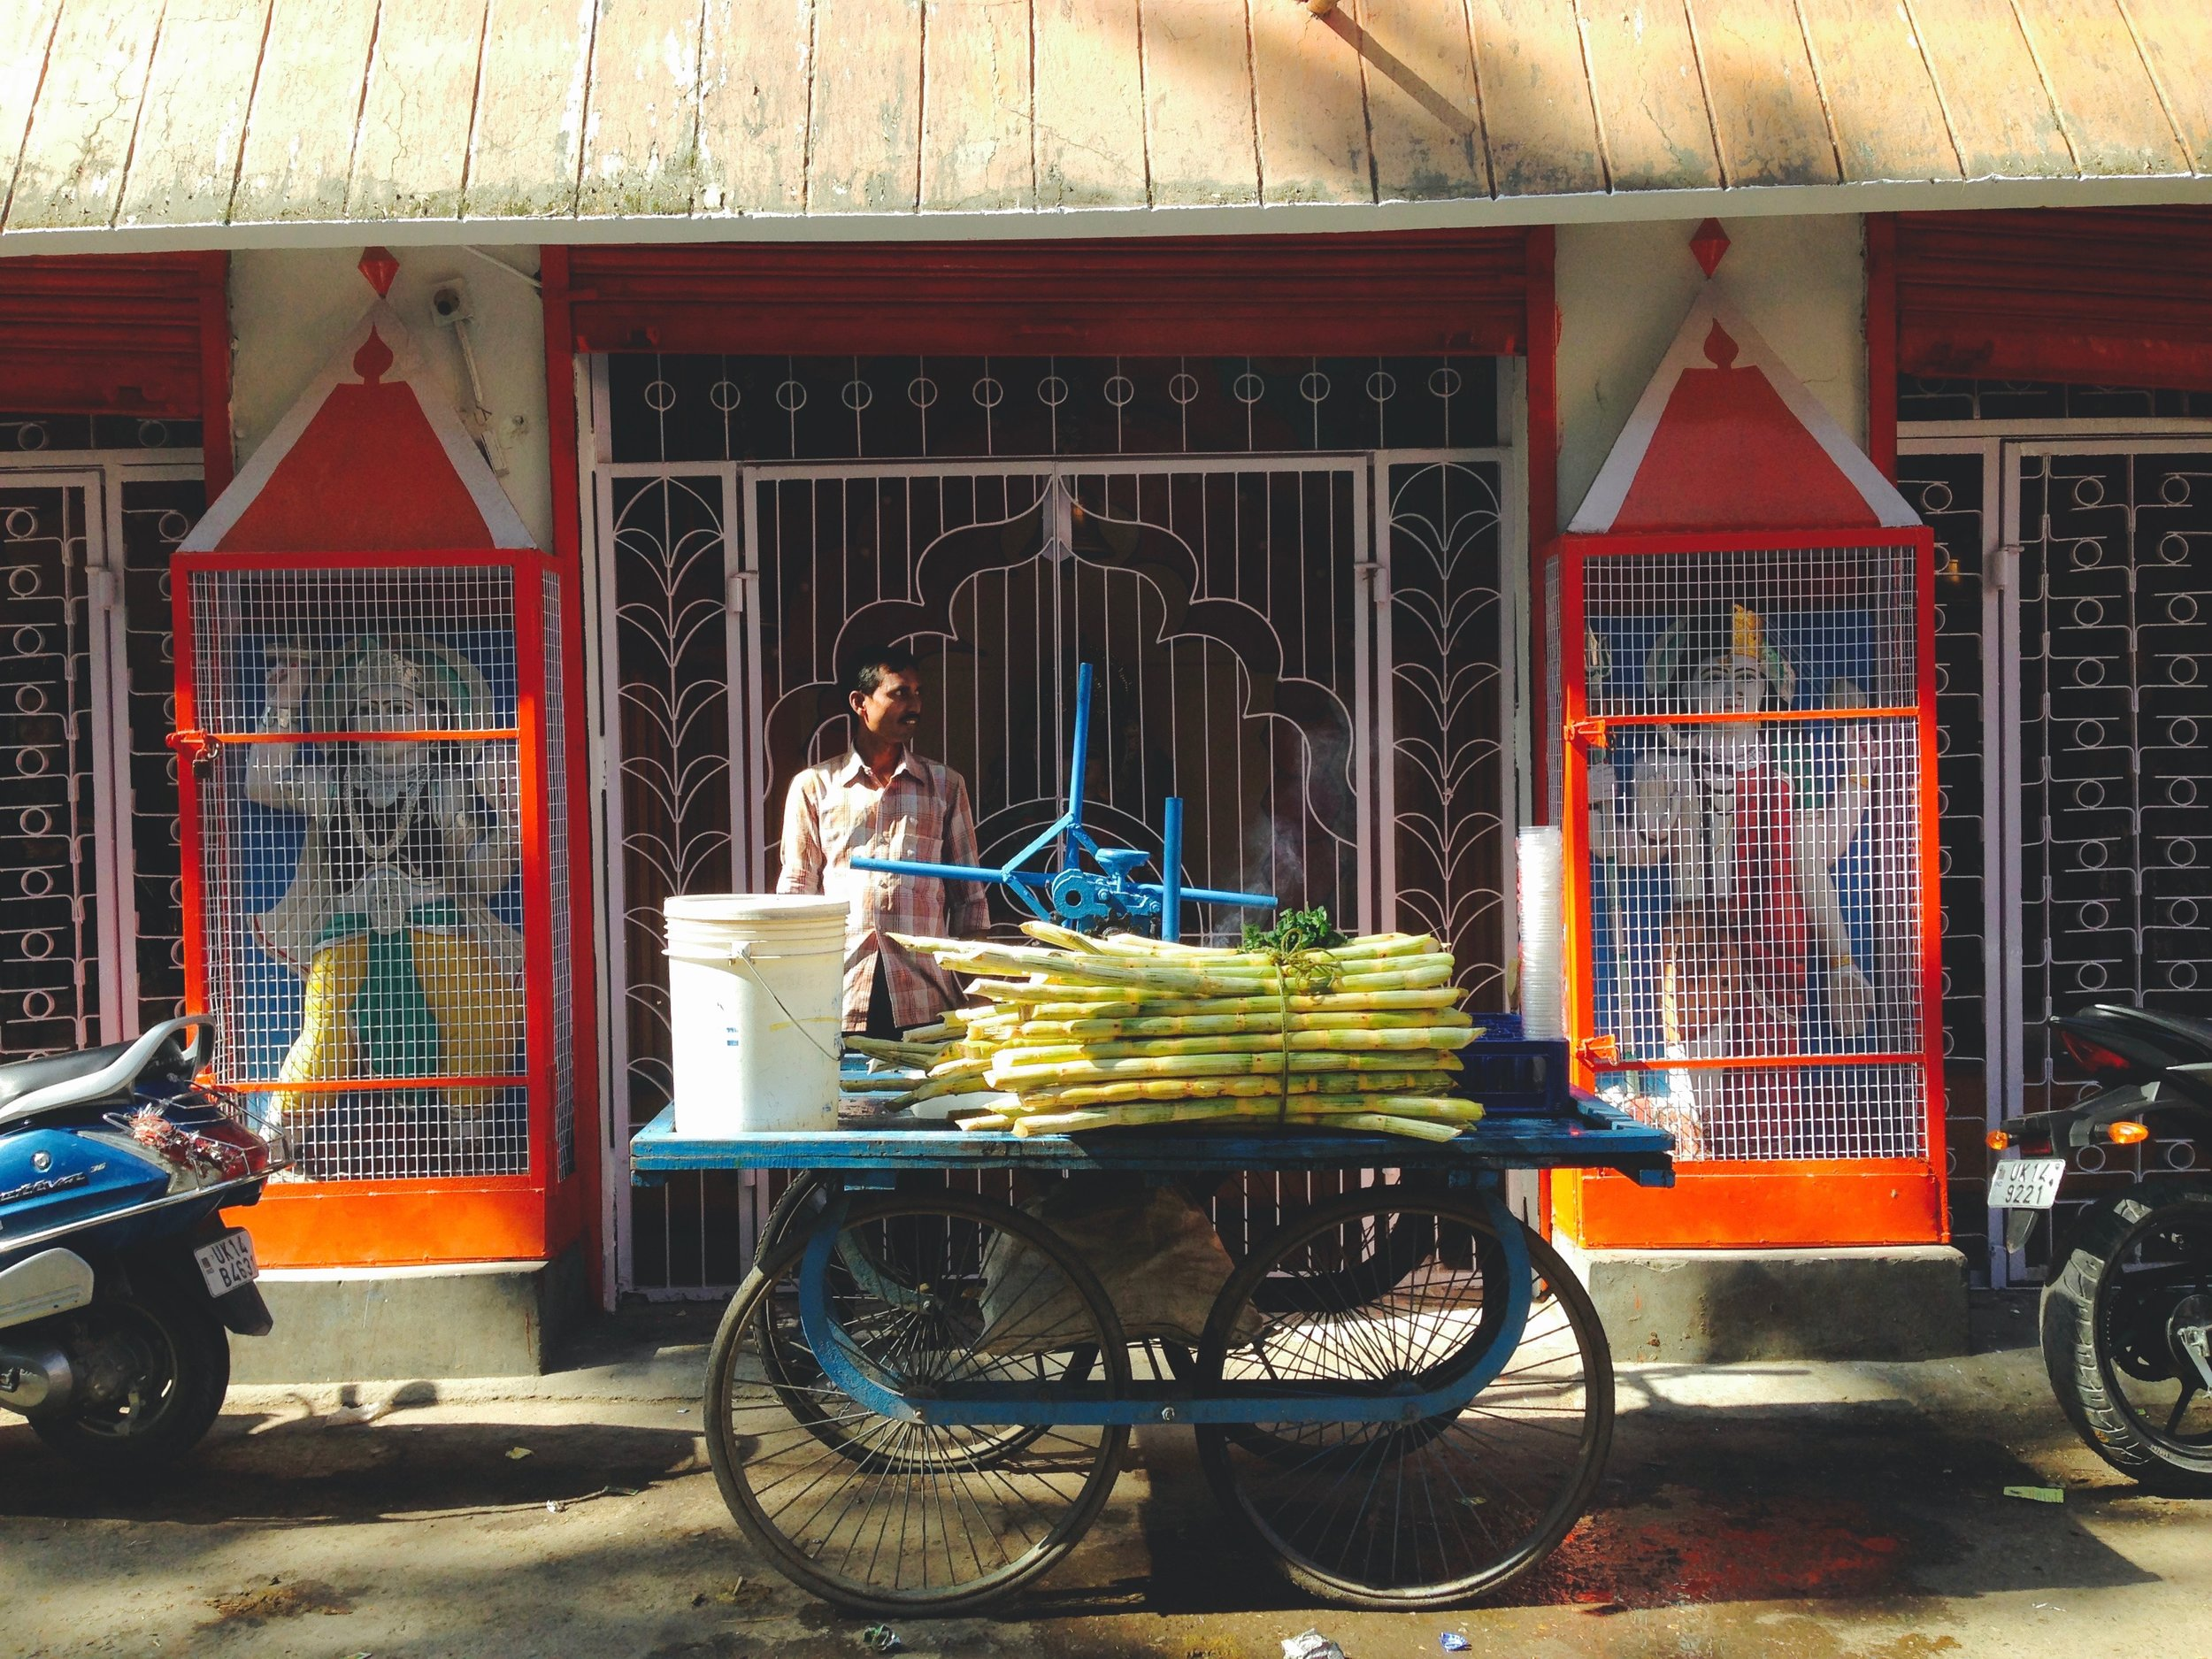 Sugarcane strands dot the streets of the city